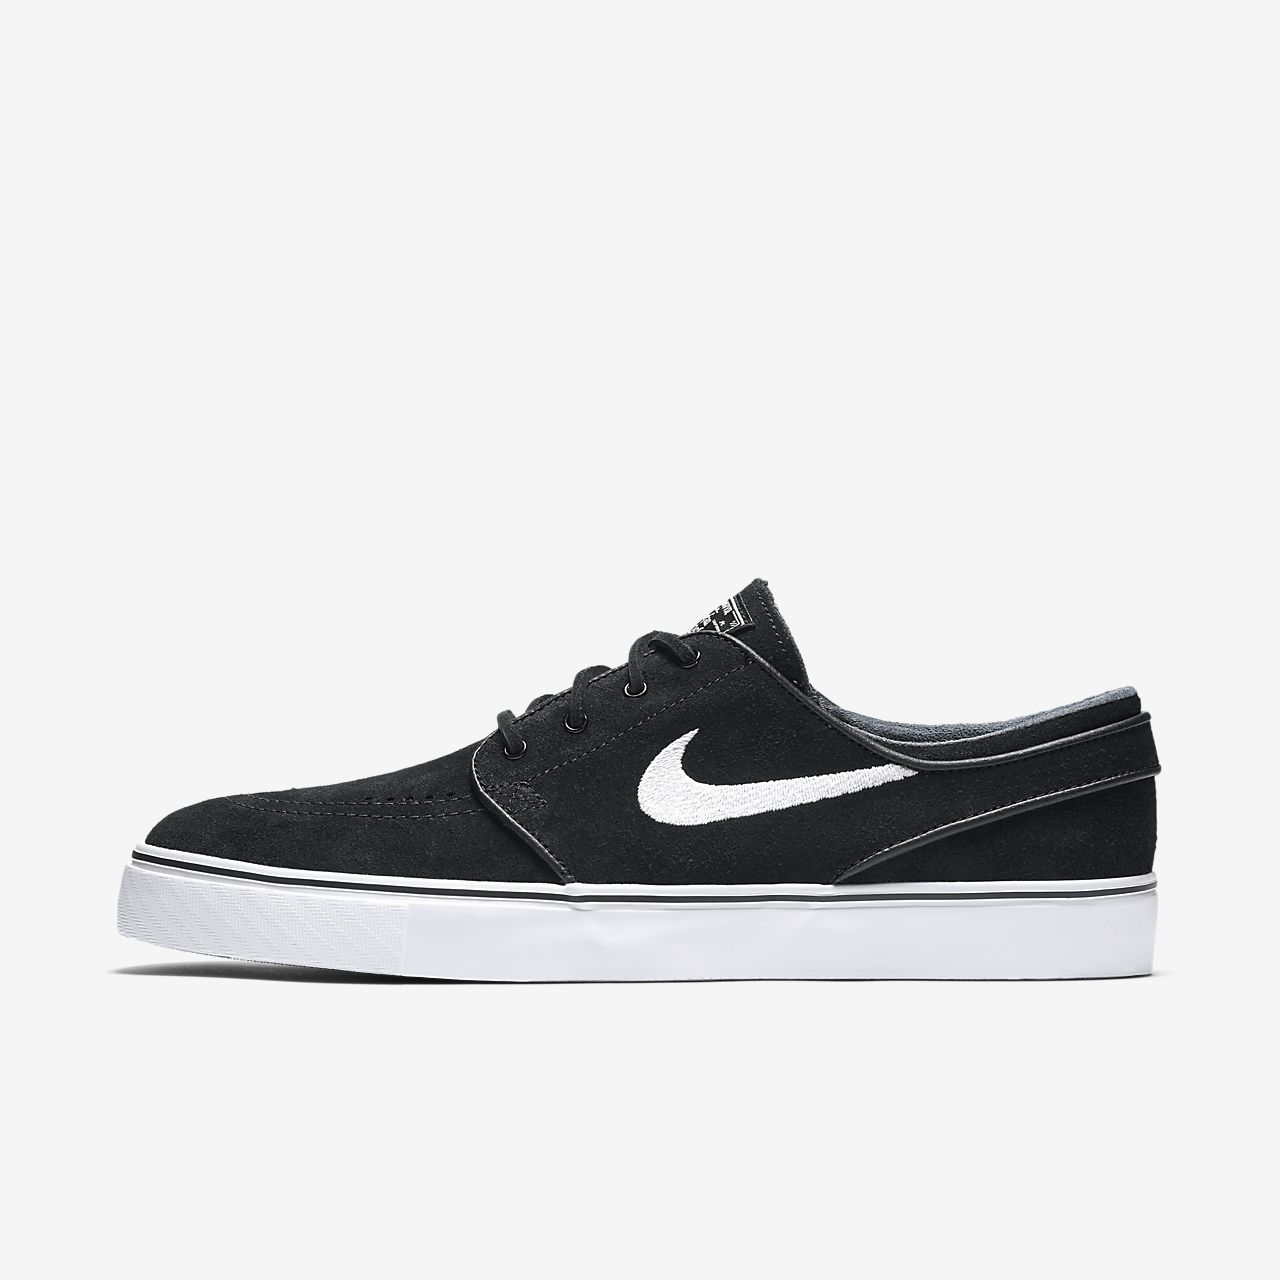 Nike SB Zoom Stefan Janoski Canvas Men's Skateboarding Shoes Black/Brown/White yB6348Z